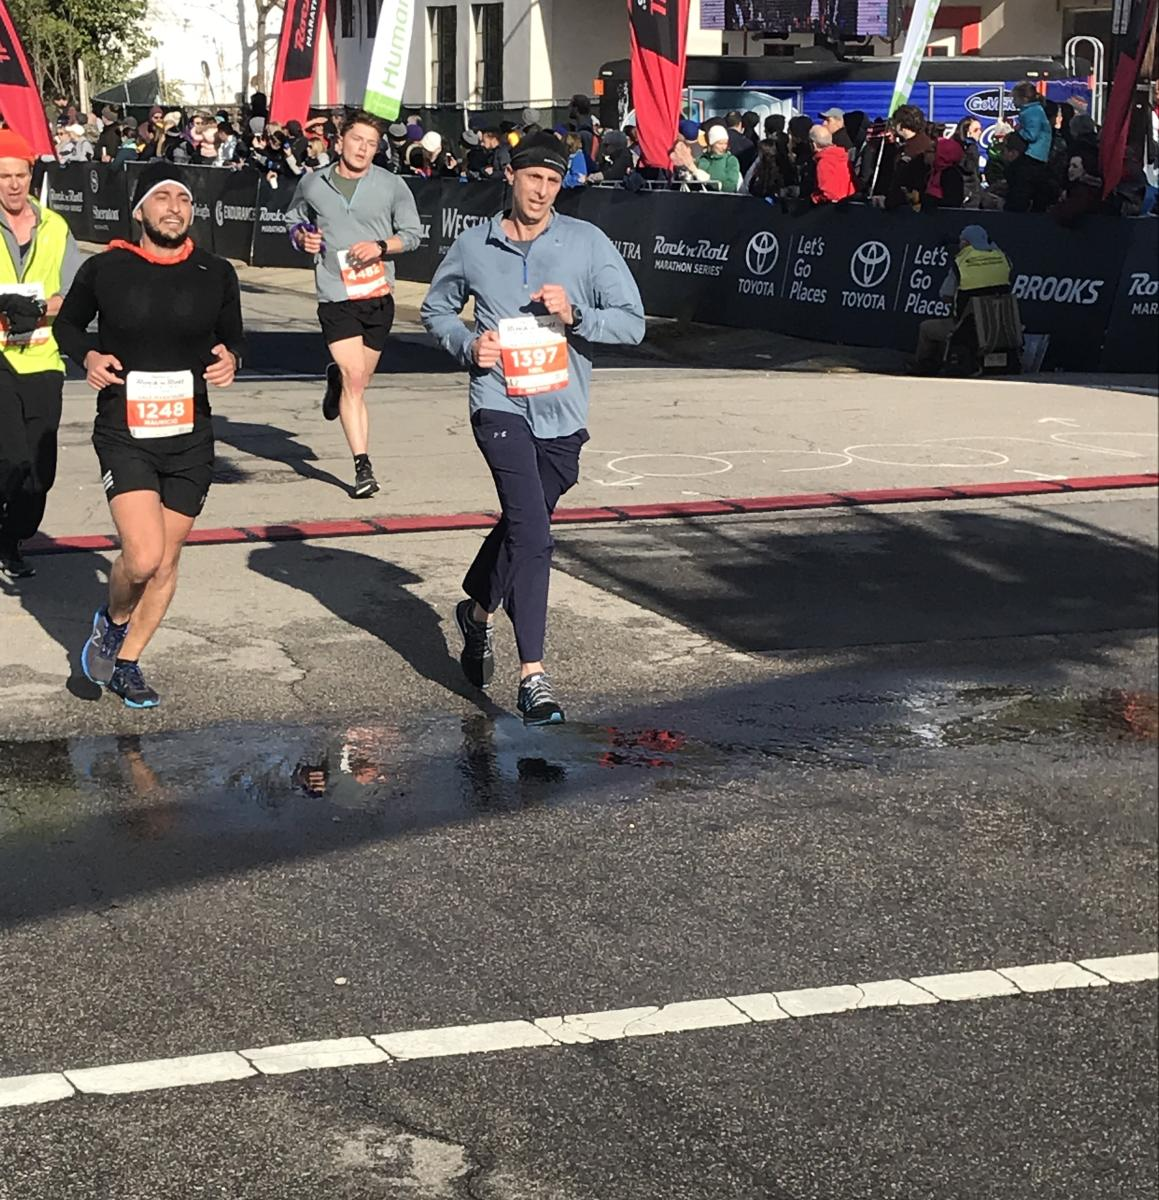 Neil Amato finishing the 2018 Rock 'n' Roll Raleigh Half-Marathon